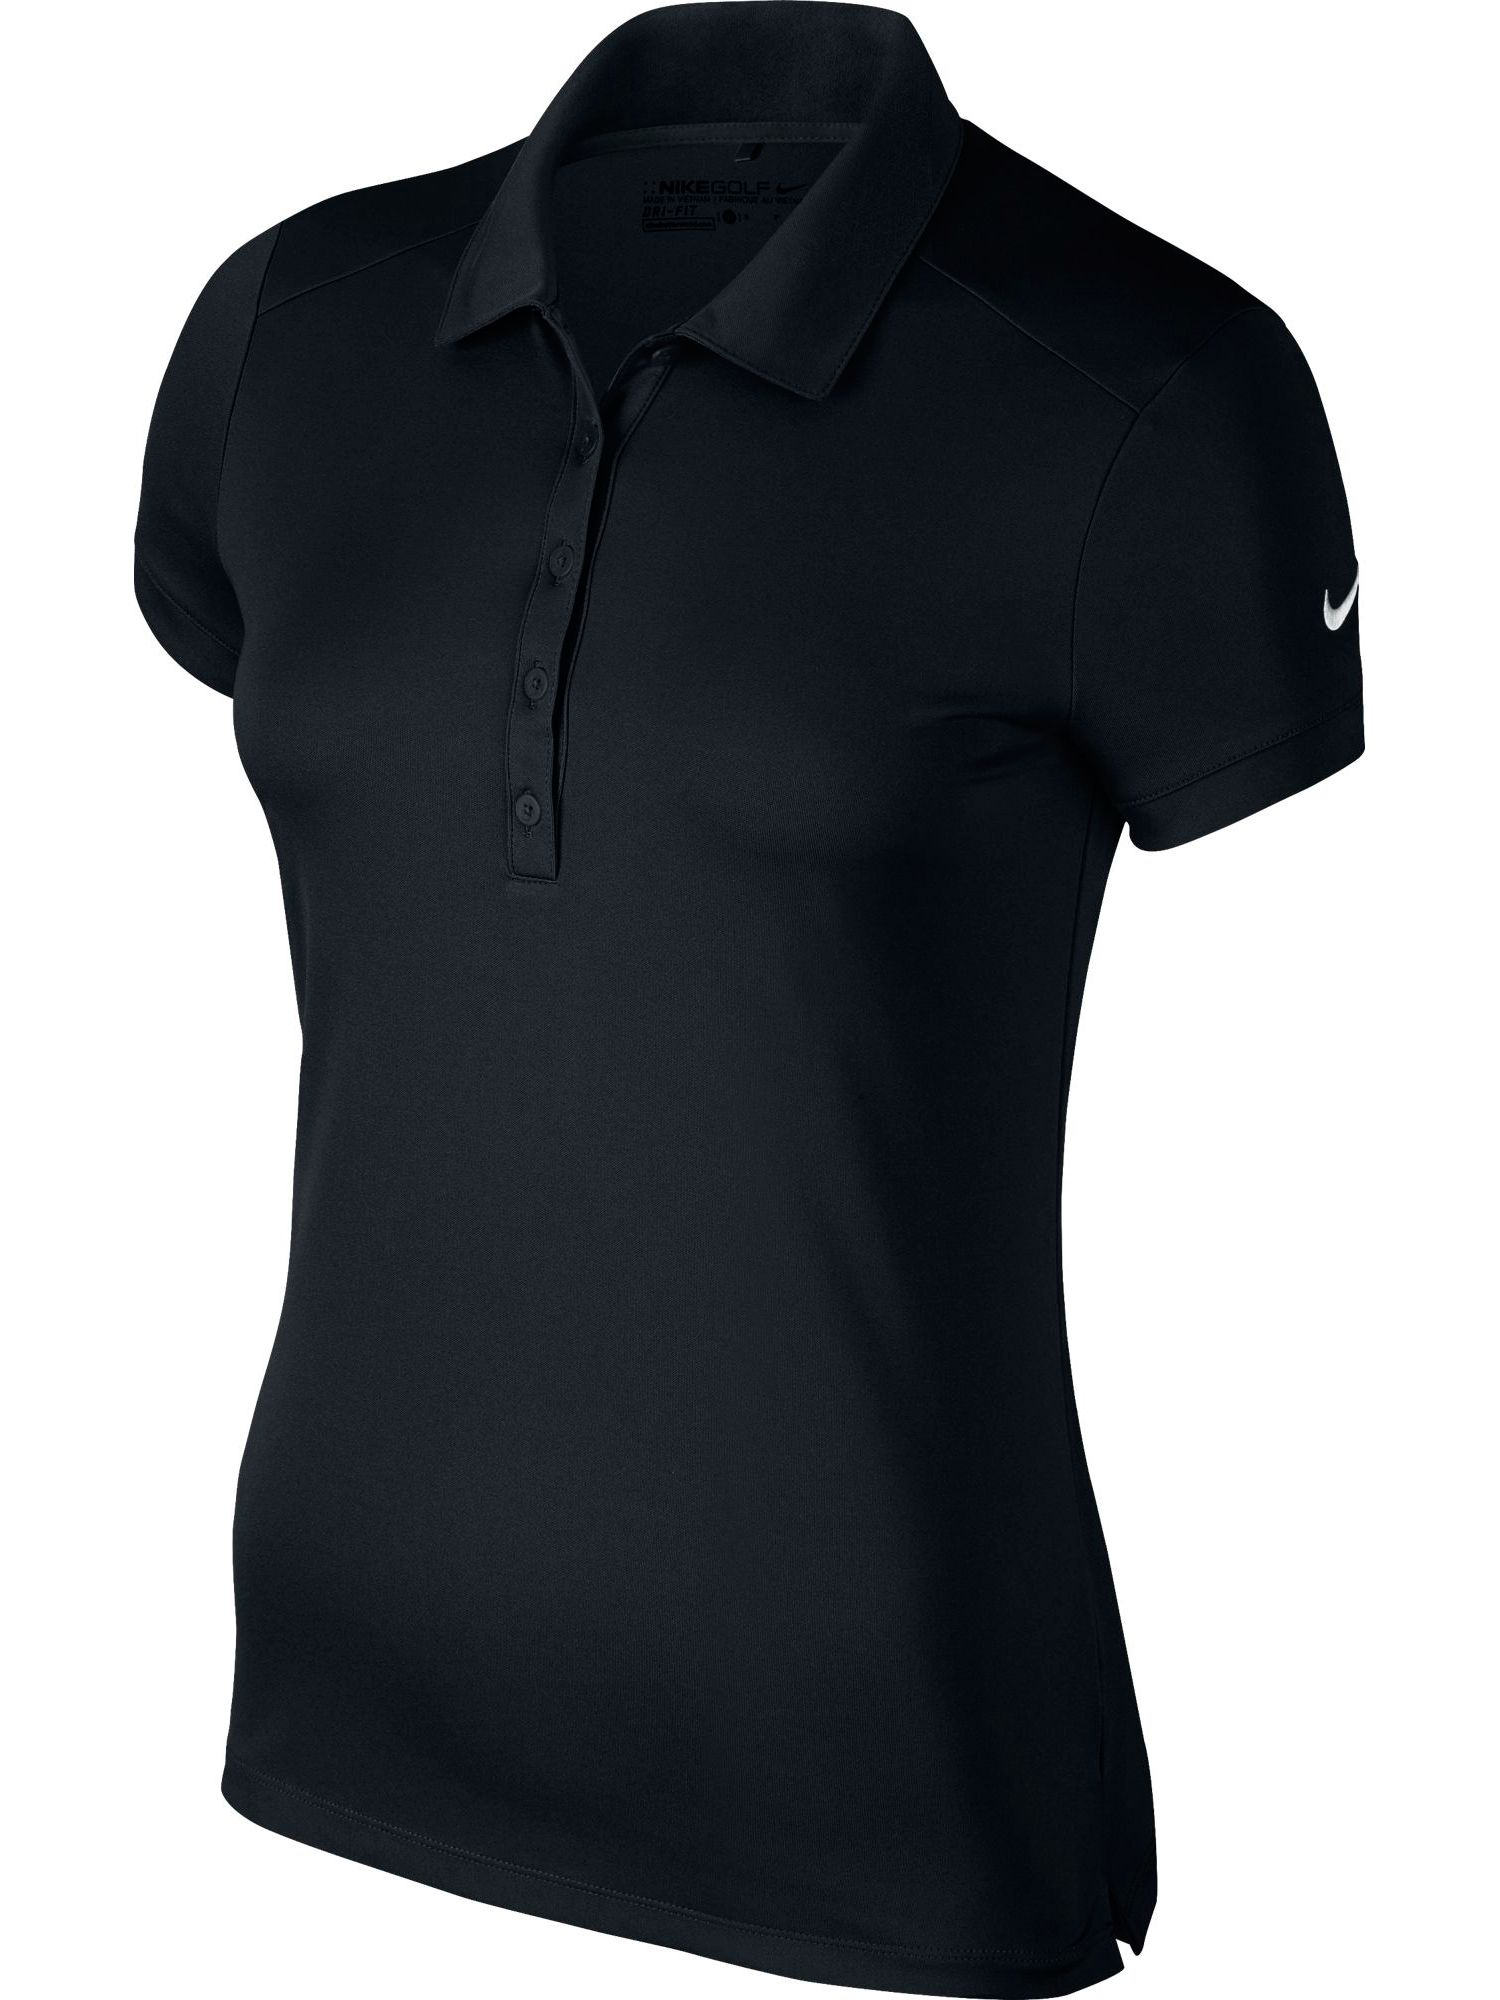 Nike Golf Victory Solid Golf Polo, Black